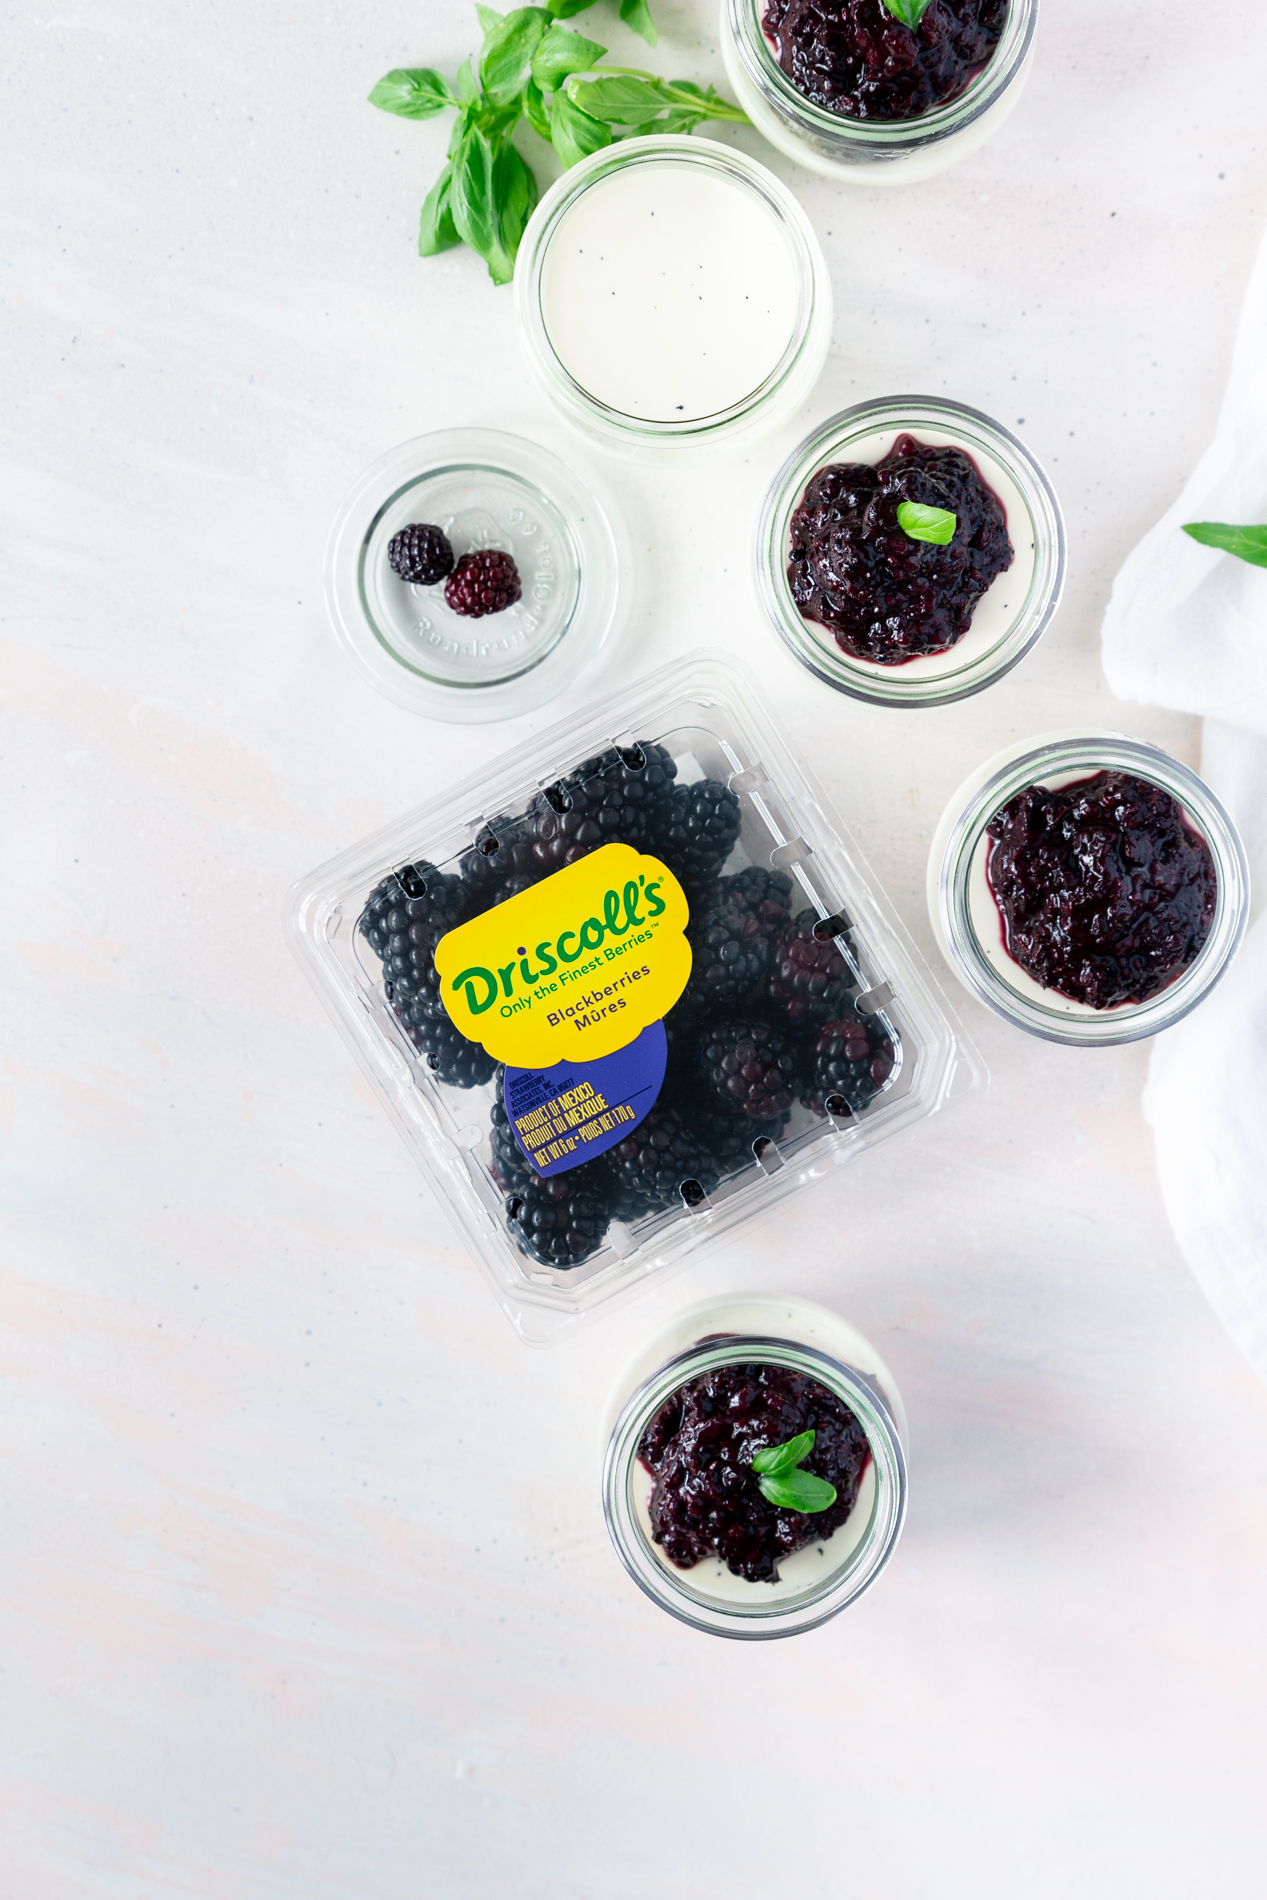 overhead view of jars of vanilla bean panna cotta with basil blackberry compote, surrounded by fresh basil leaves and a container of Driscoll's blackberries.